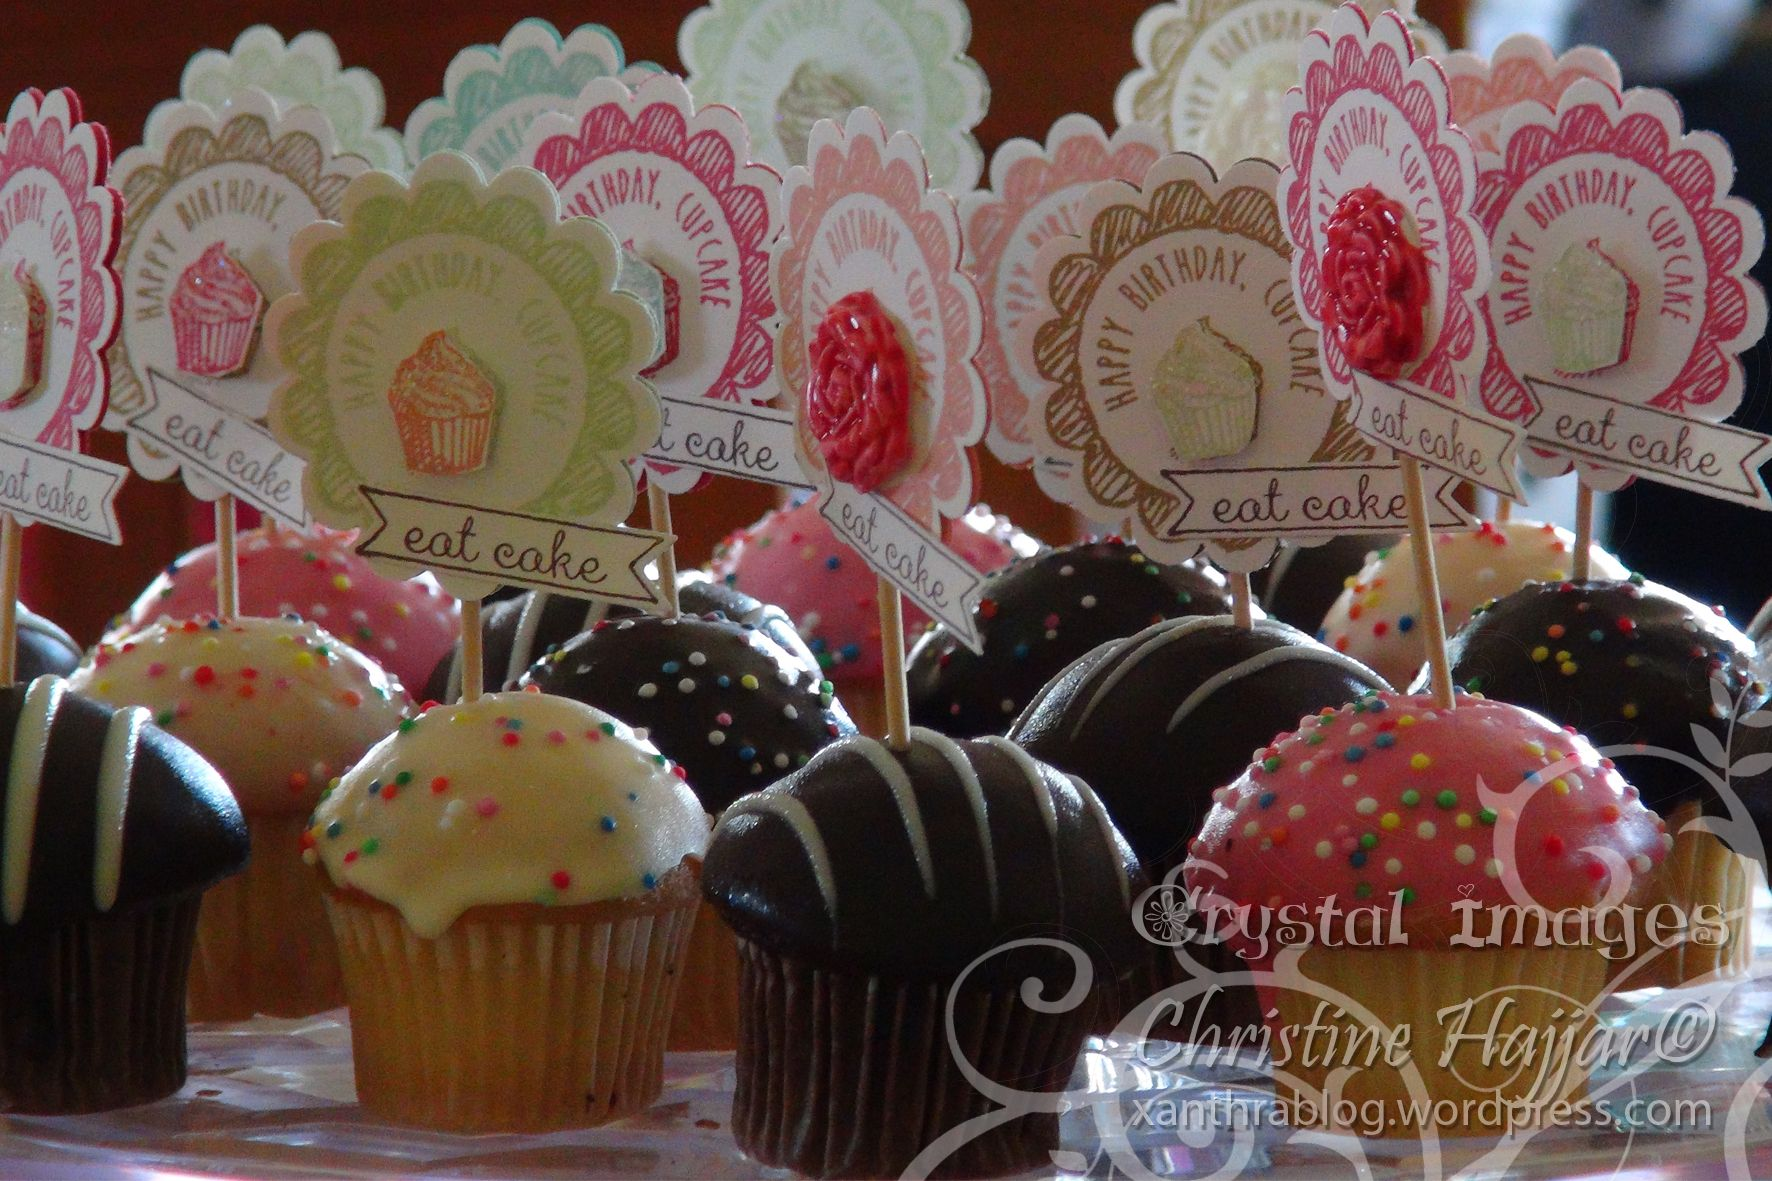 Stampin' Up! Scallop Punch Cup Cake Toppers. 2013-2014 In Colours.